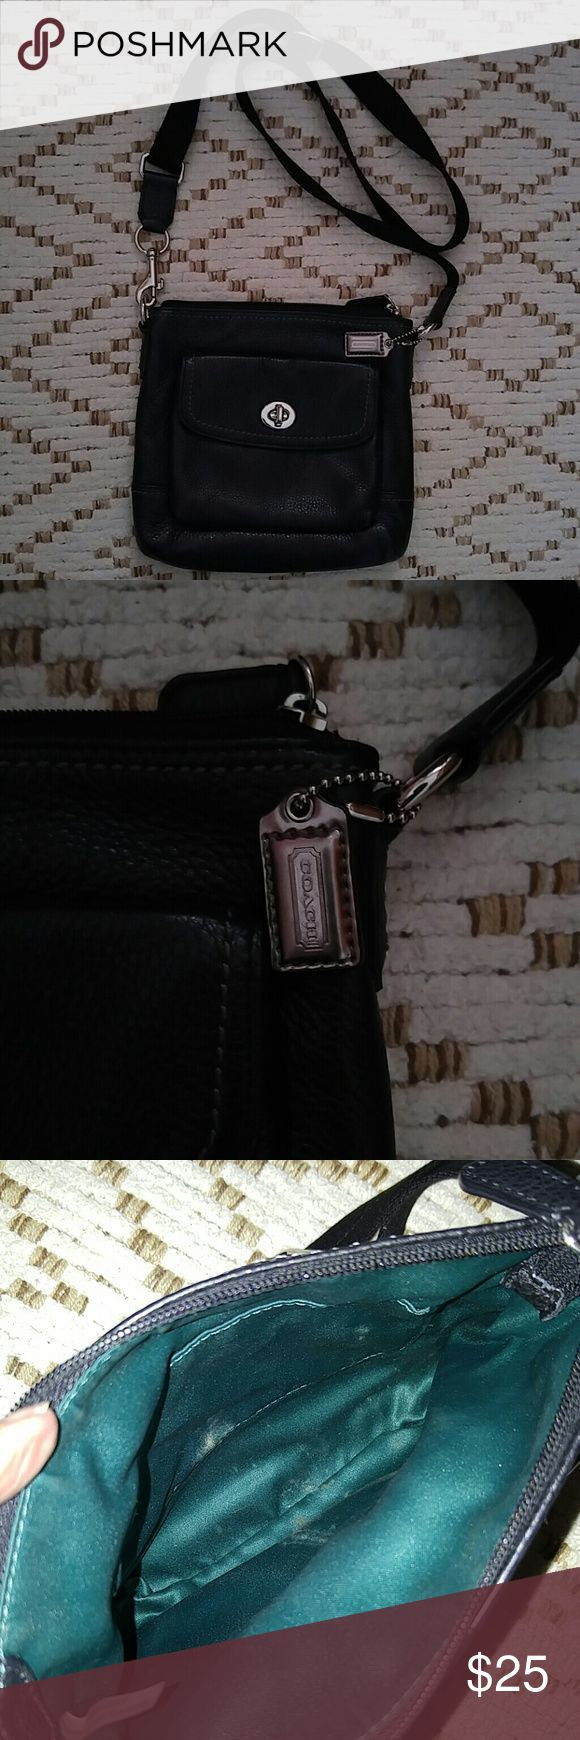 Coach small crossbody Very nice leather.used about 7 times until I got a bigger phone..really loved this bag.bought at coach outlet store. Coach Bags Crossbody Bags